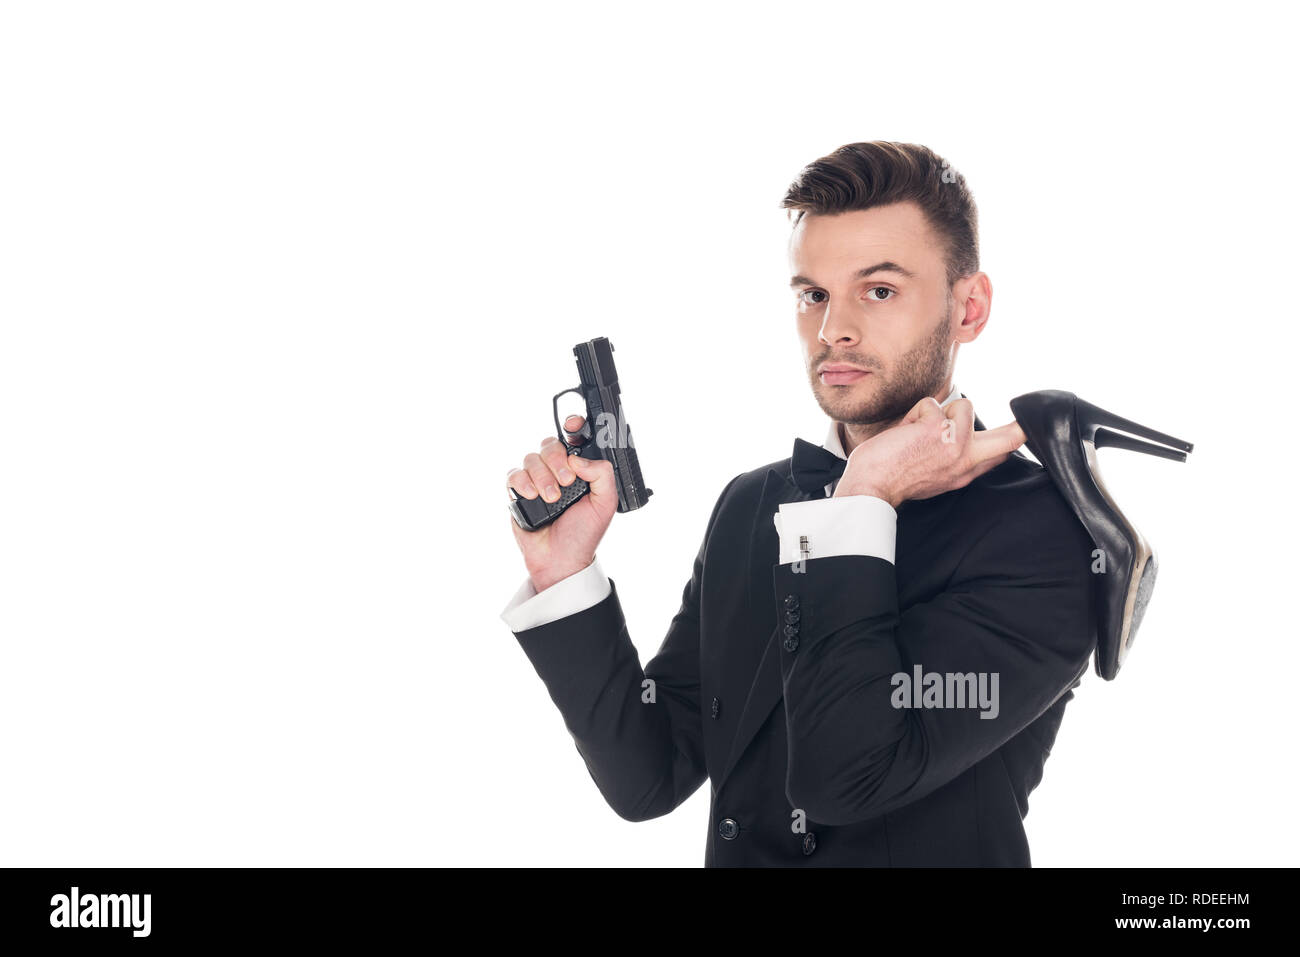 handsome secret agent in black suit holding handgun and high heels, isolated on white - Stock Image